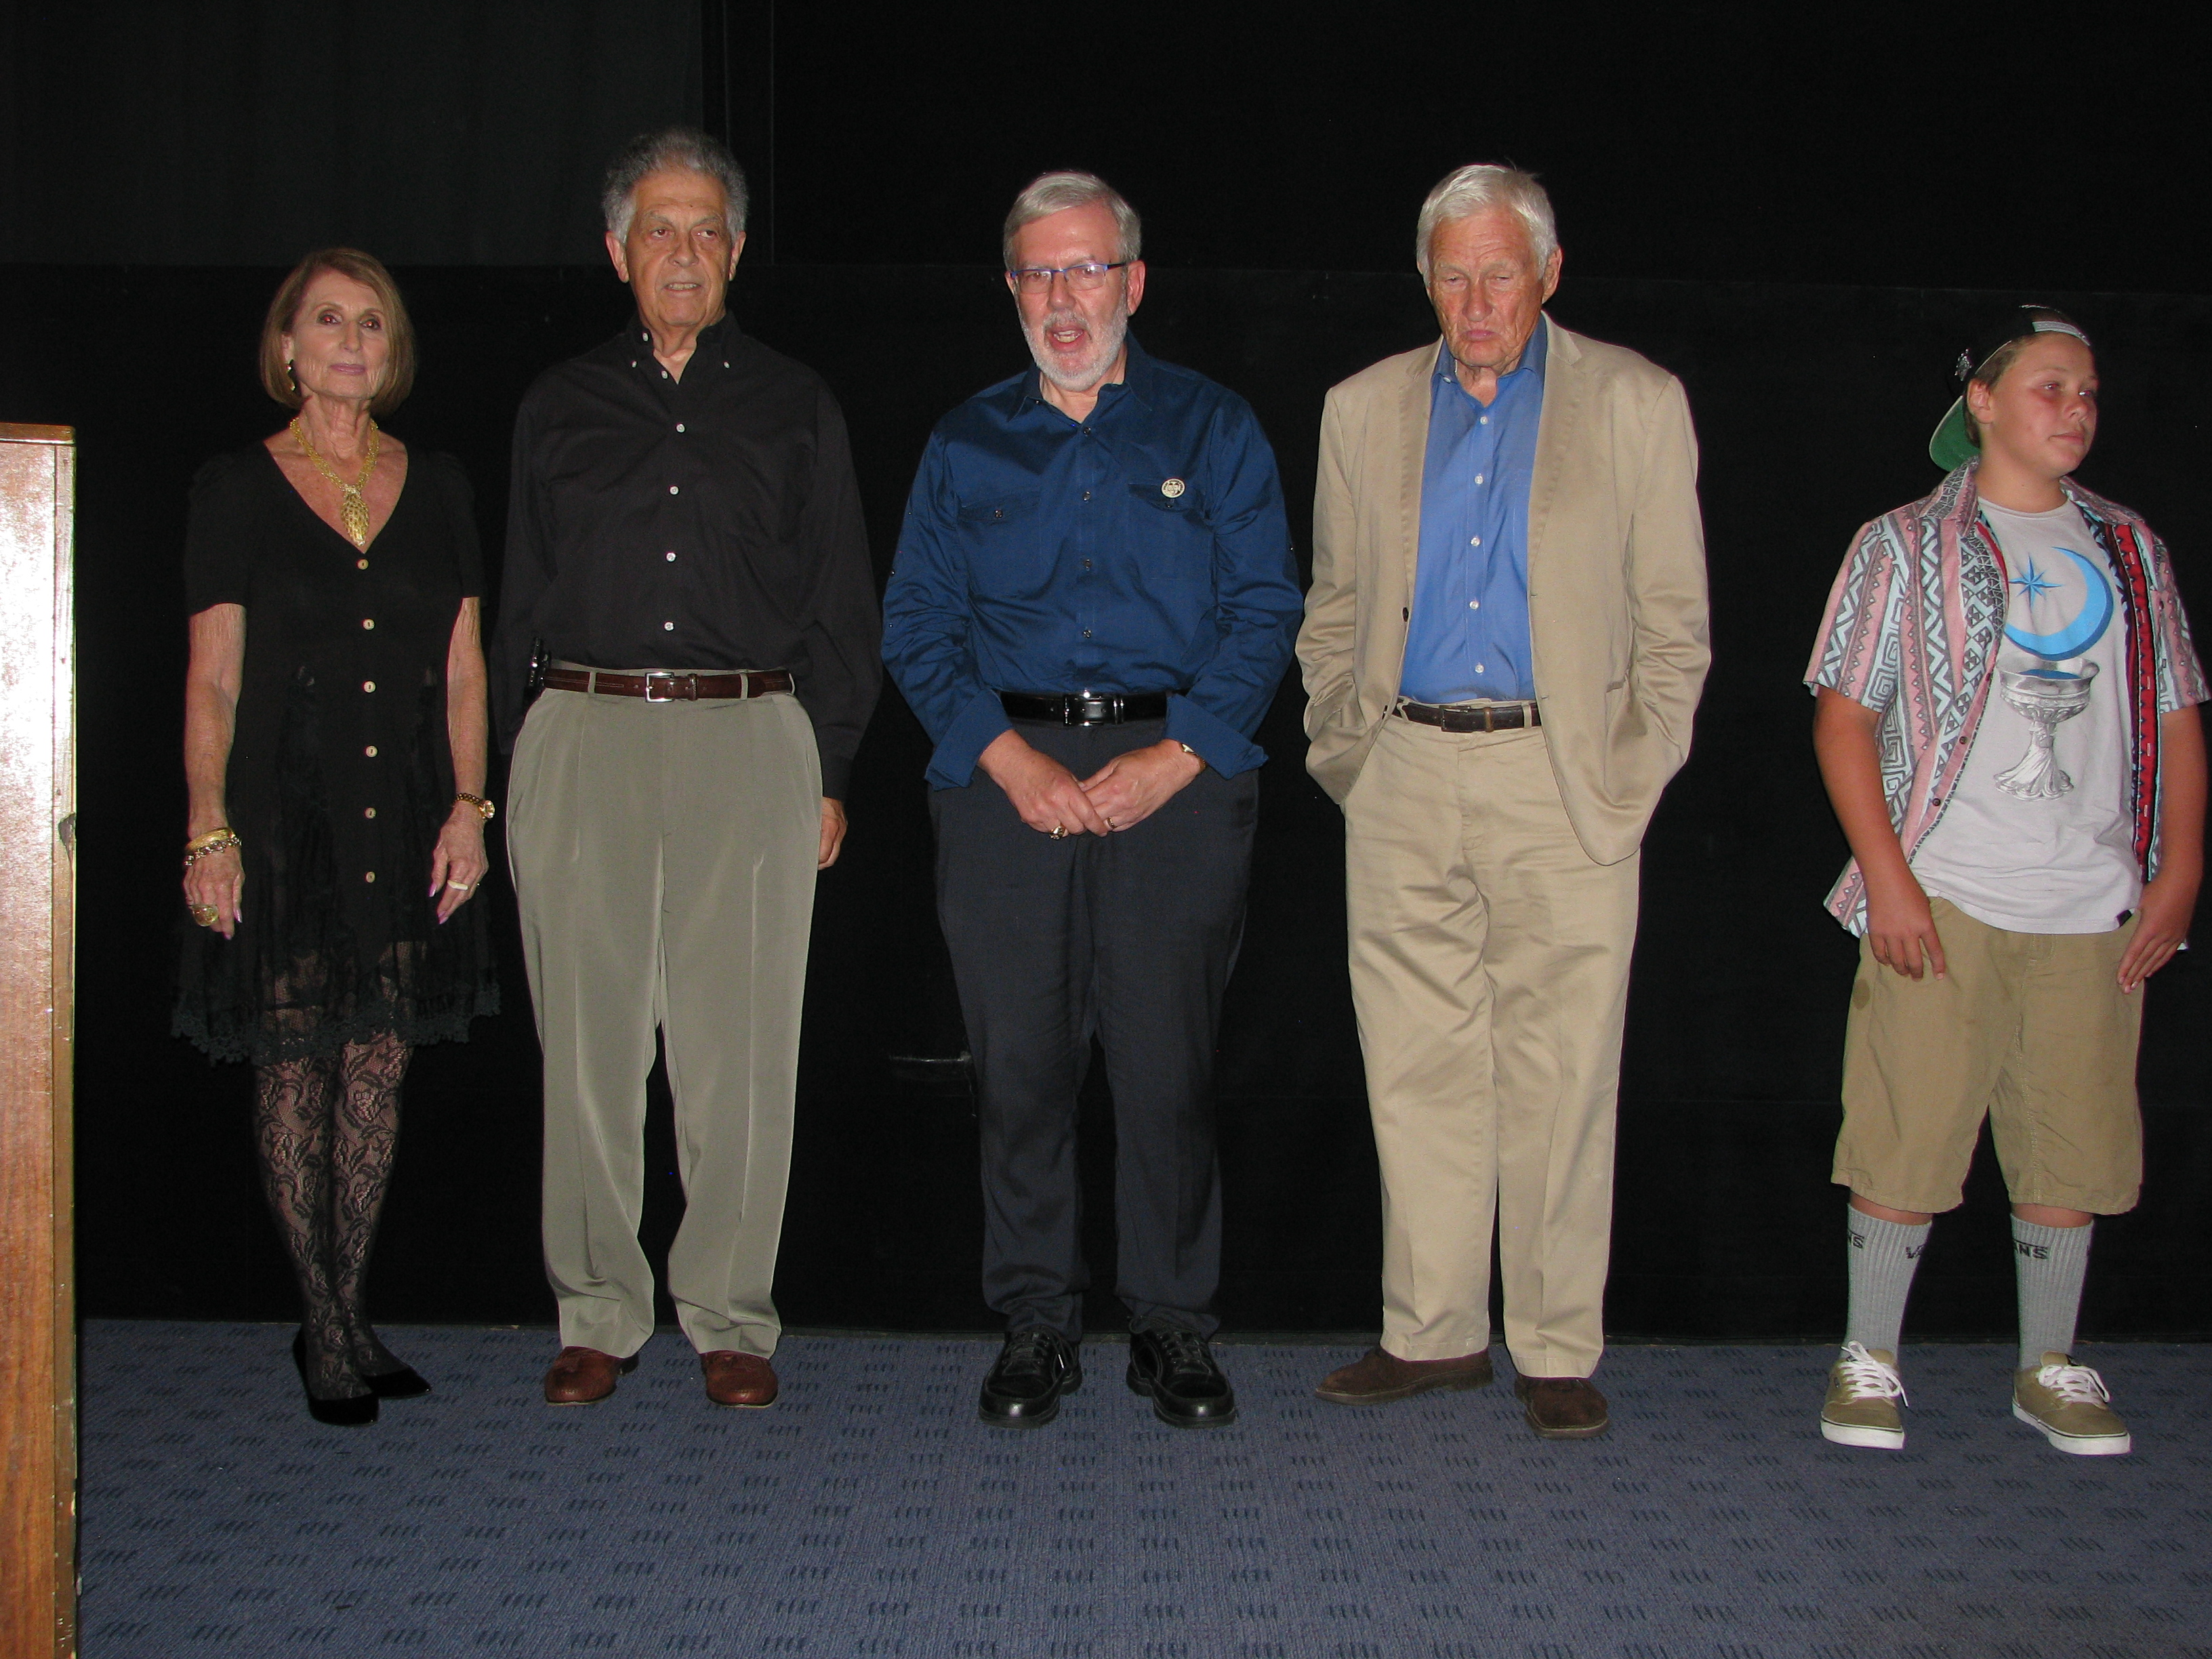 The givers of the toasts pose on stage before taking their seats (Joan, Ralph, film historian Leonard Maltin and Tommy)